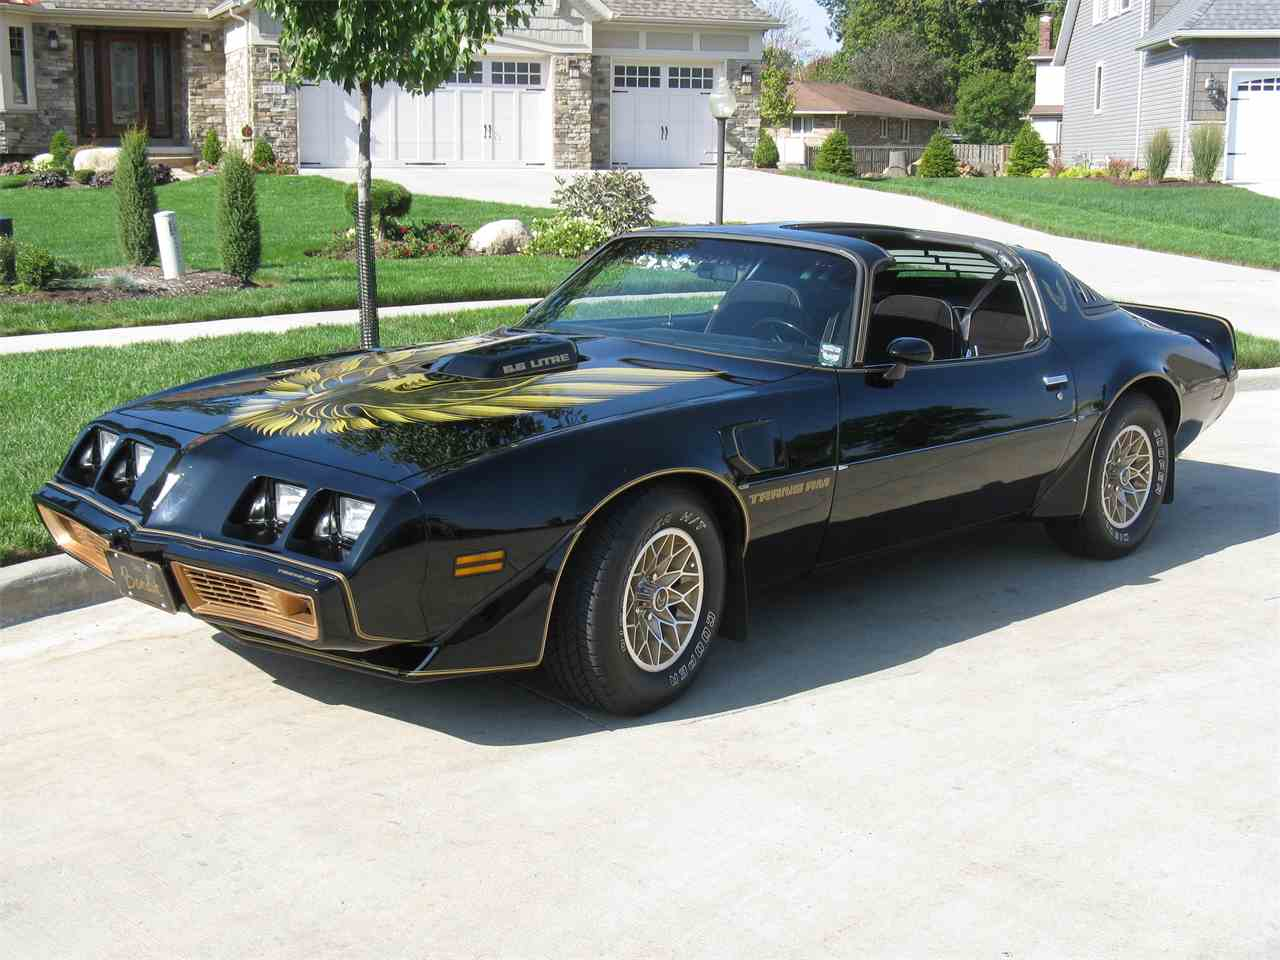 Trucks Under 5000 >> 1979 Pontiac Firebird Trans Am SE for Sale | ClassicCars.com | CC-1032340